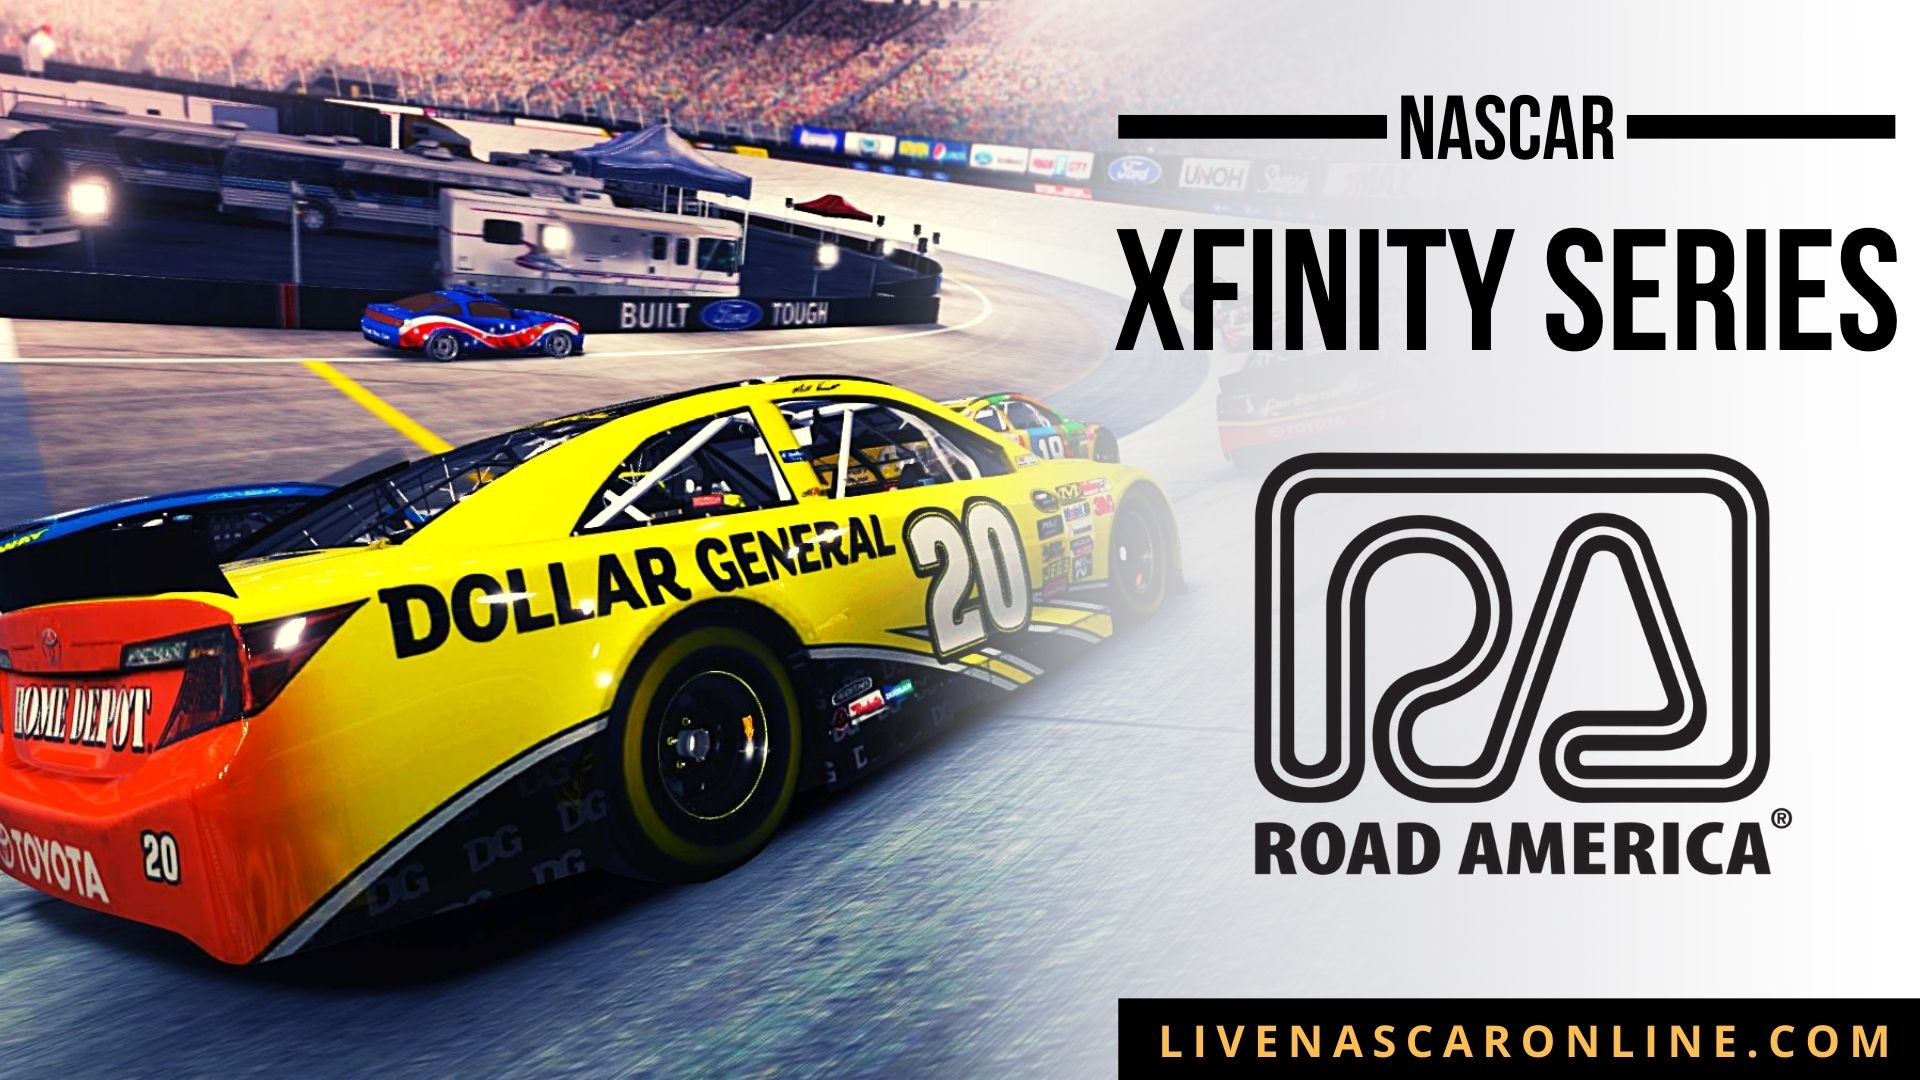 NASCAR Xfinity Race at Road America Live Stream 2021